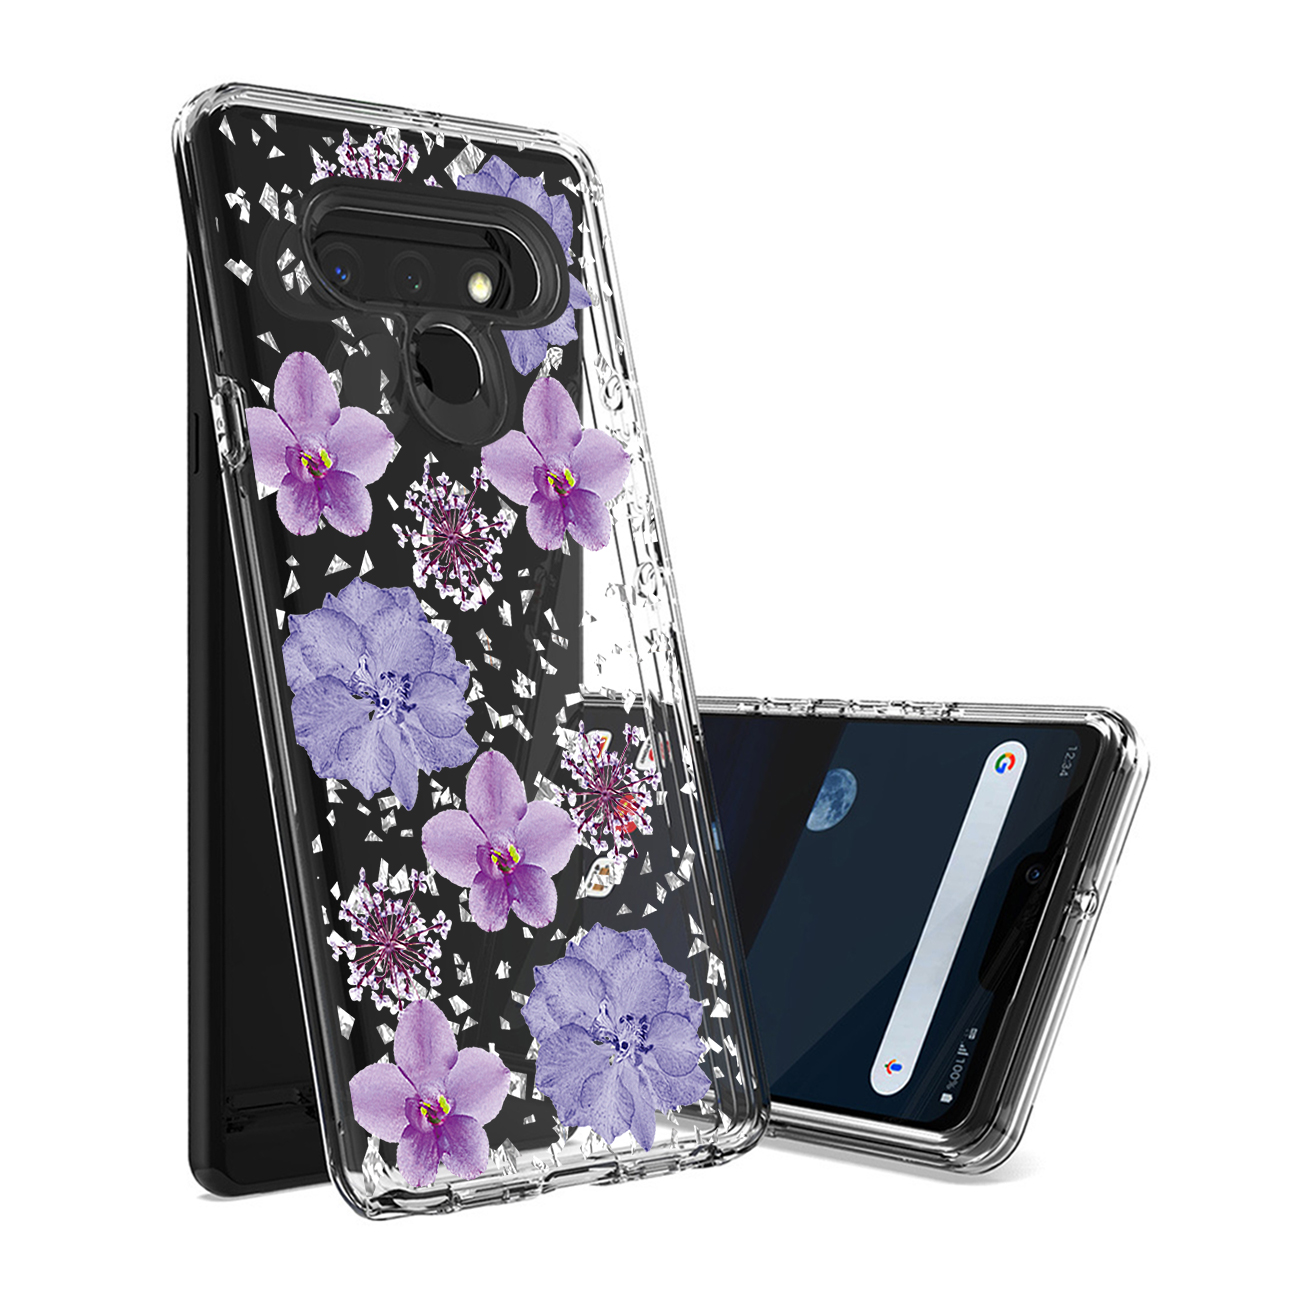 Reiko Pressed dried flower Design Phone case for LG Stylo 6 in Purple PC25-LGSTYLO6PP